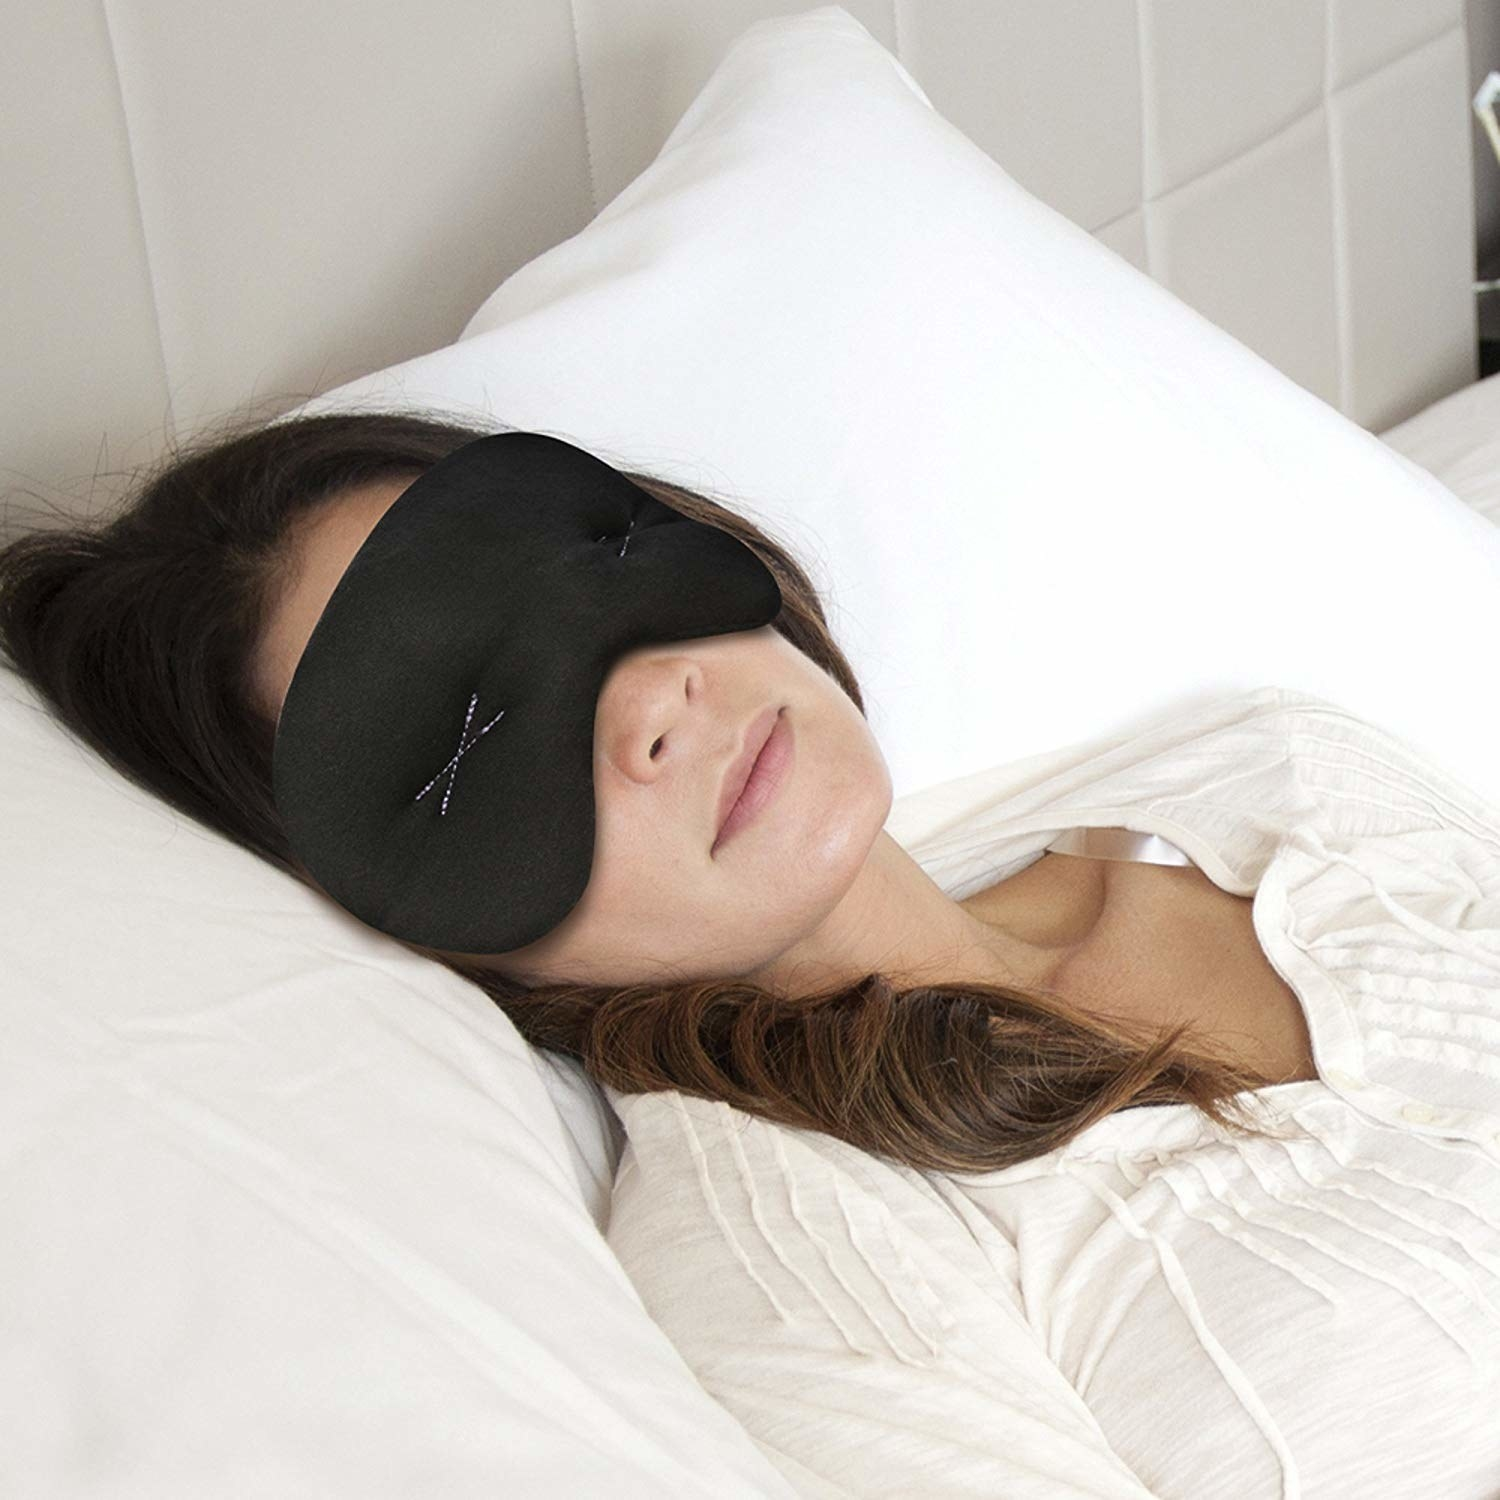 A person laying in bed with the mask over their eyes